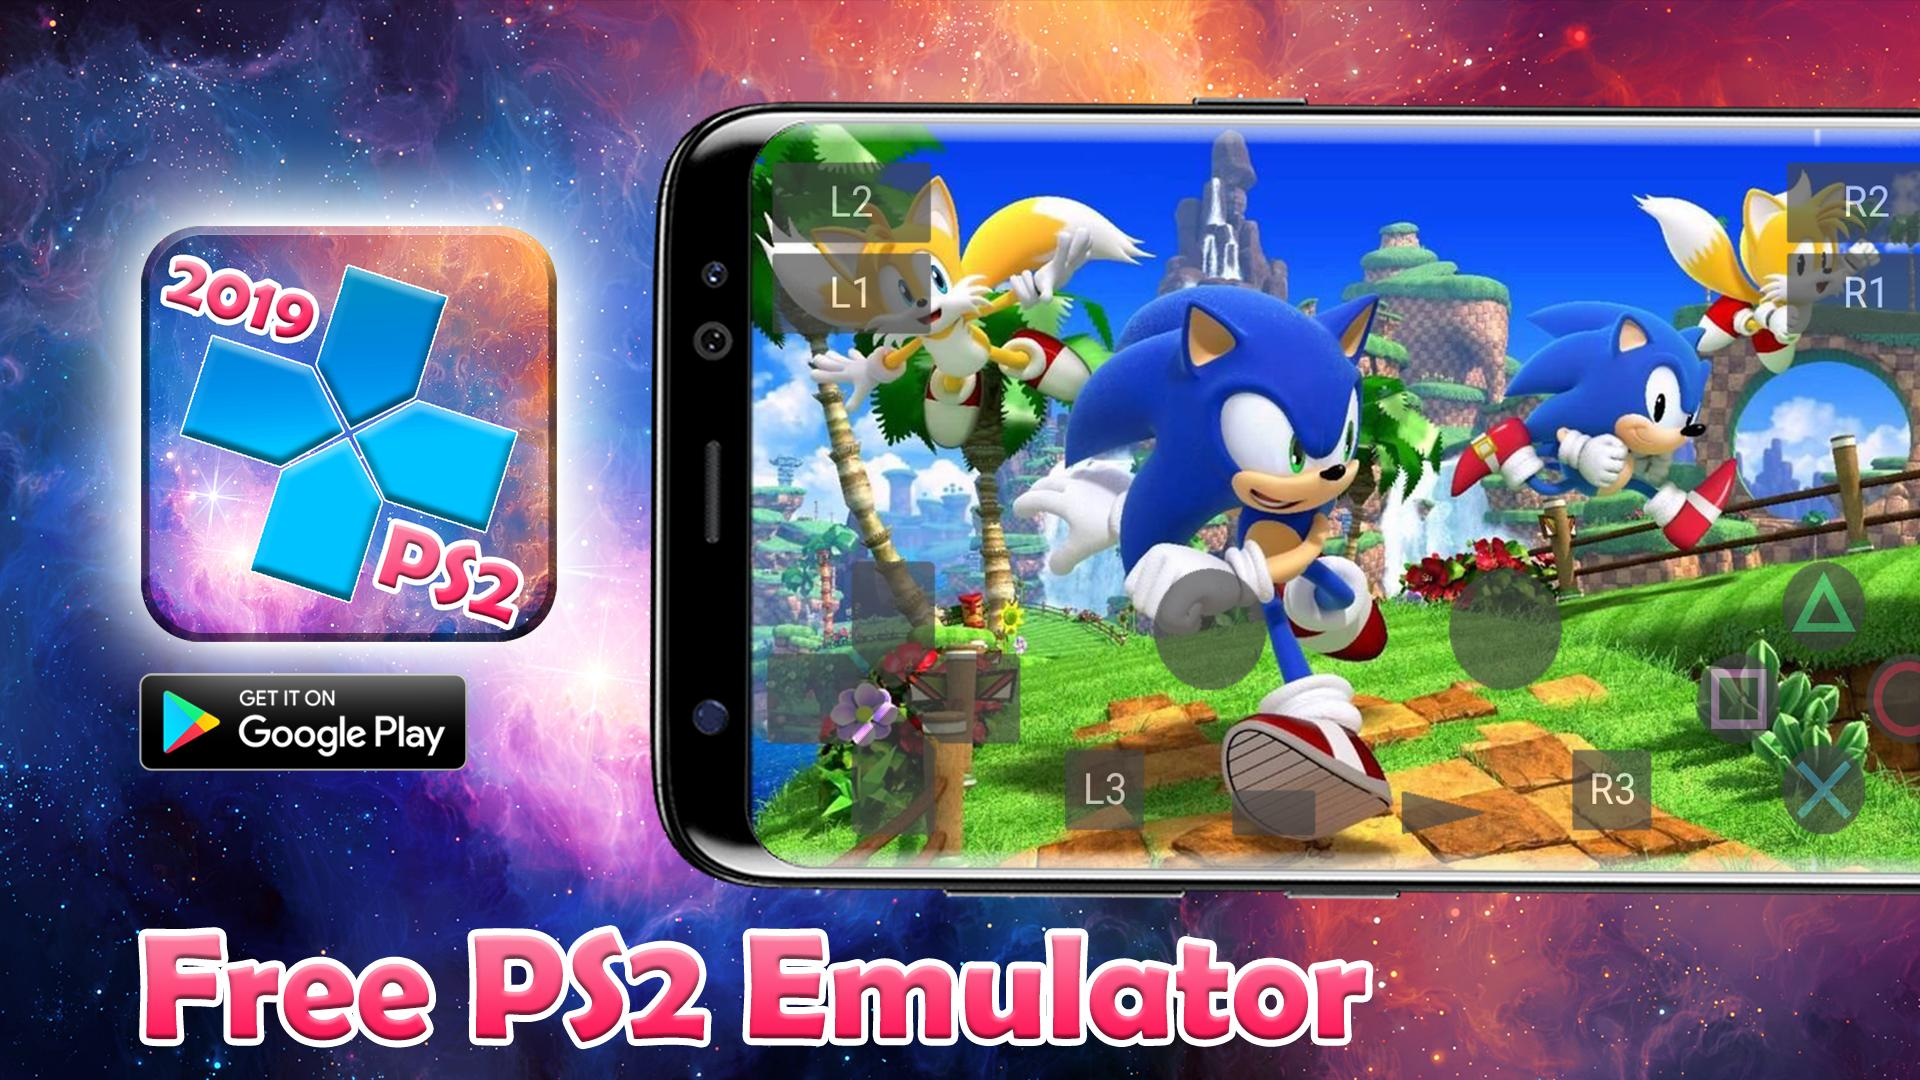 Free PS2 Emulator 2019 for Android - APK Download